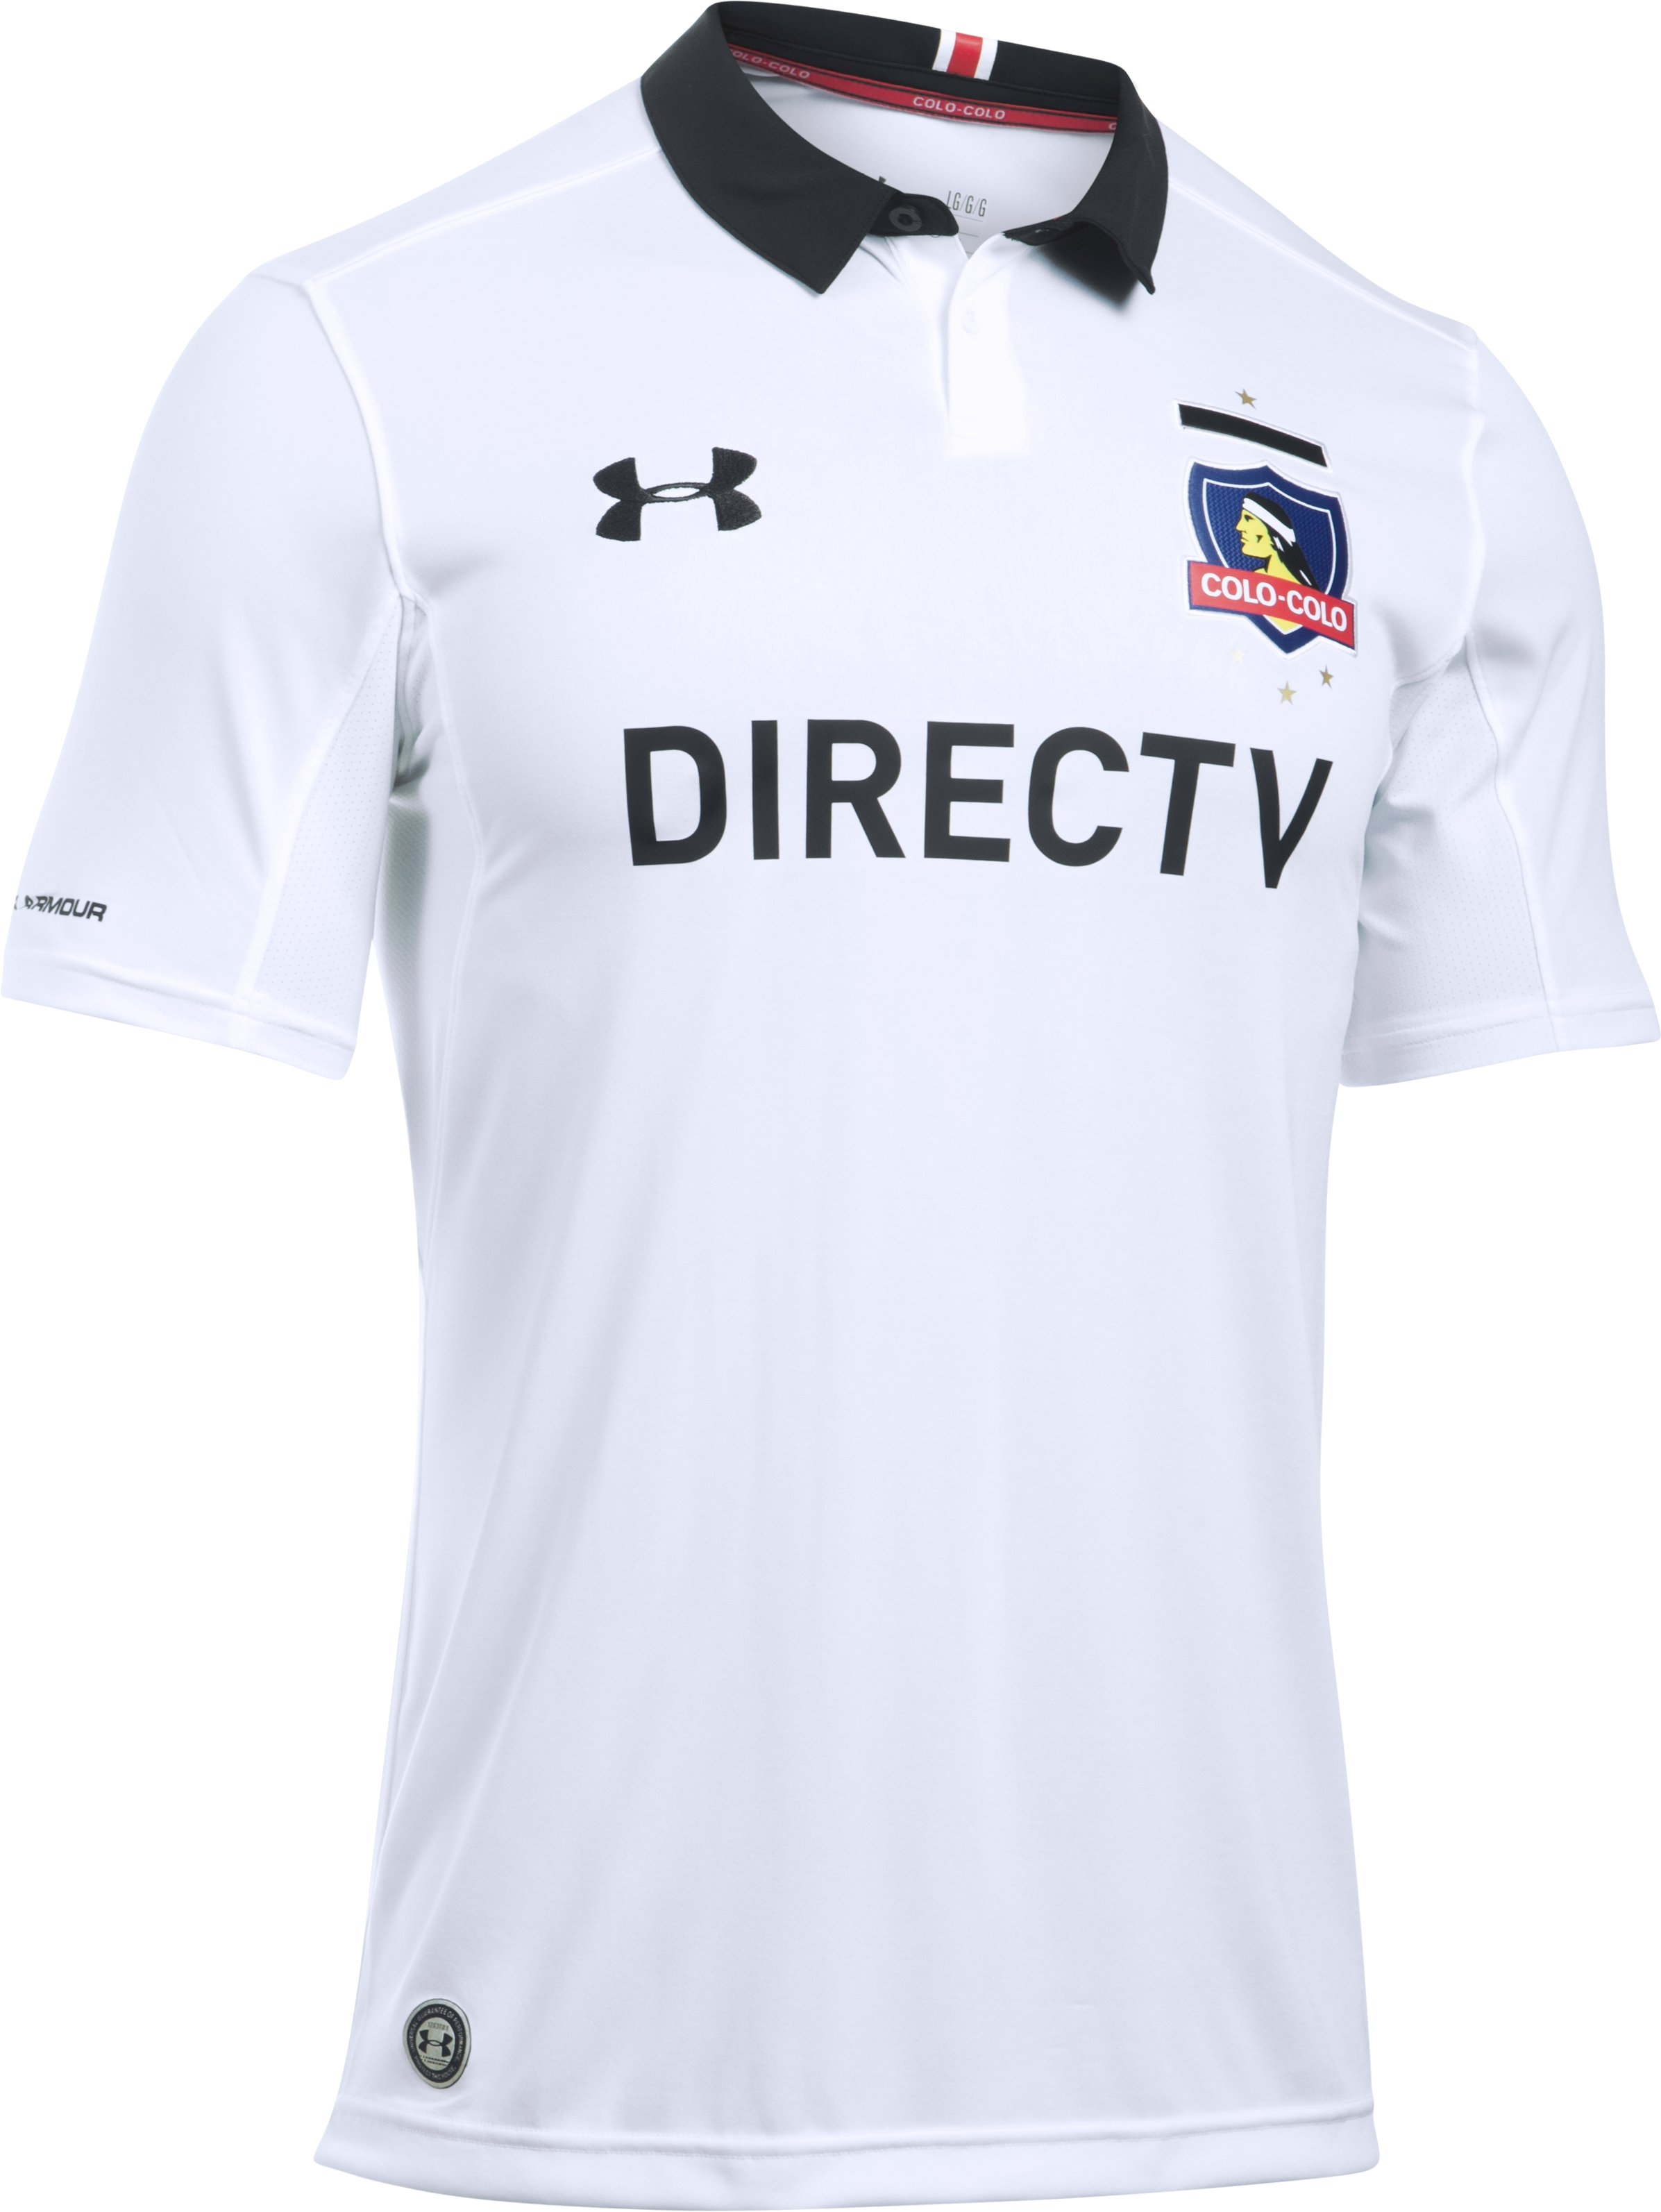 Men's Colo-Colo 16/17 Home Replica Jersey, White